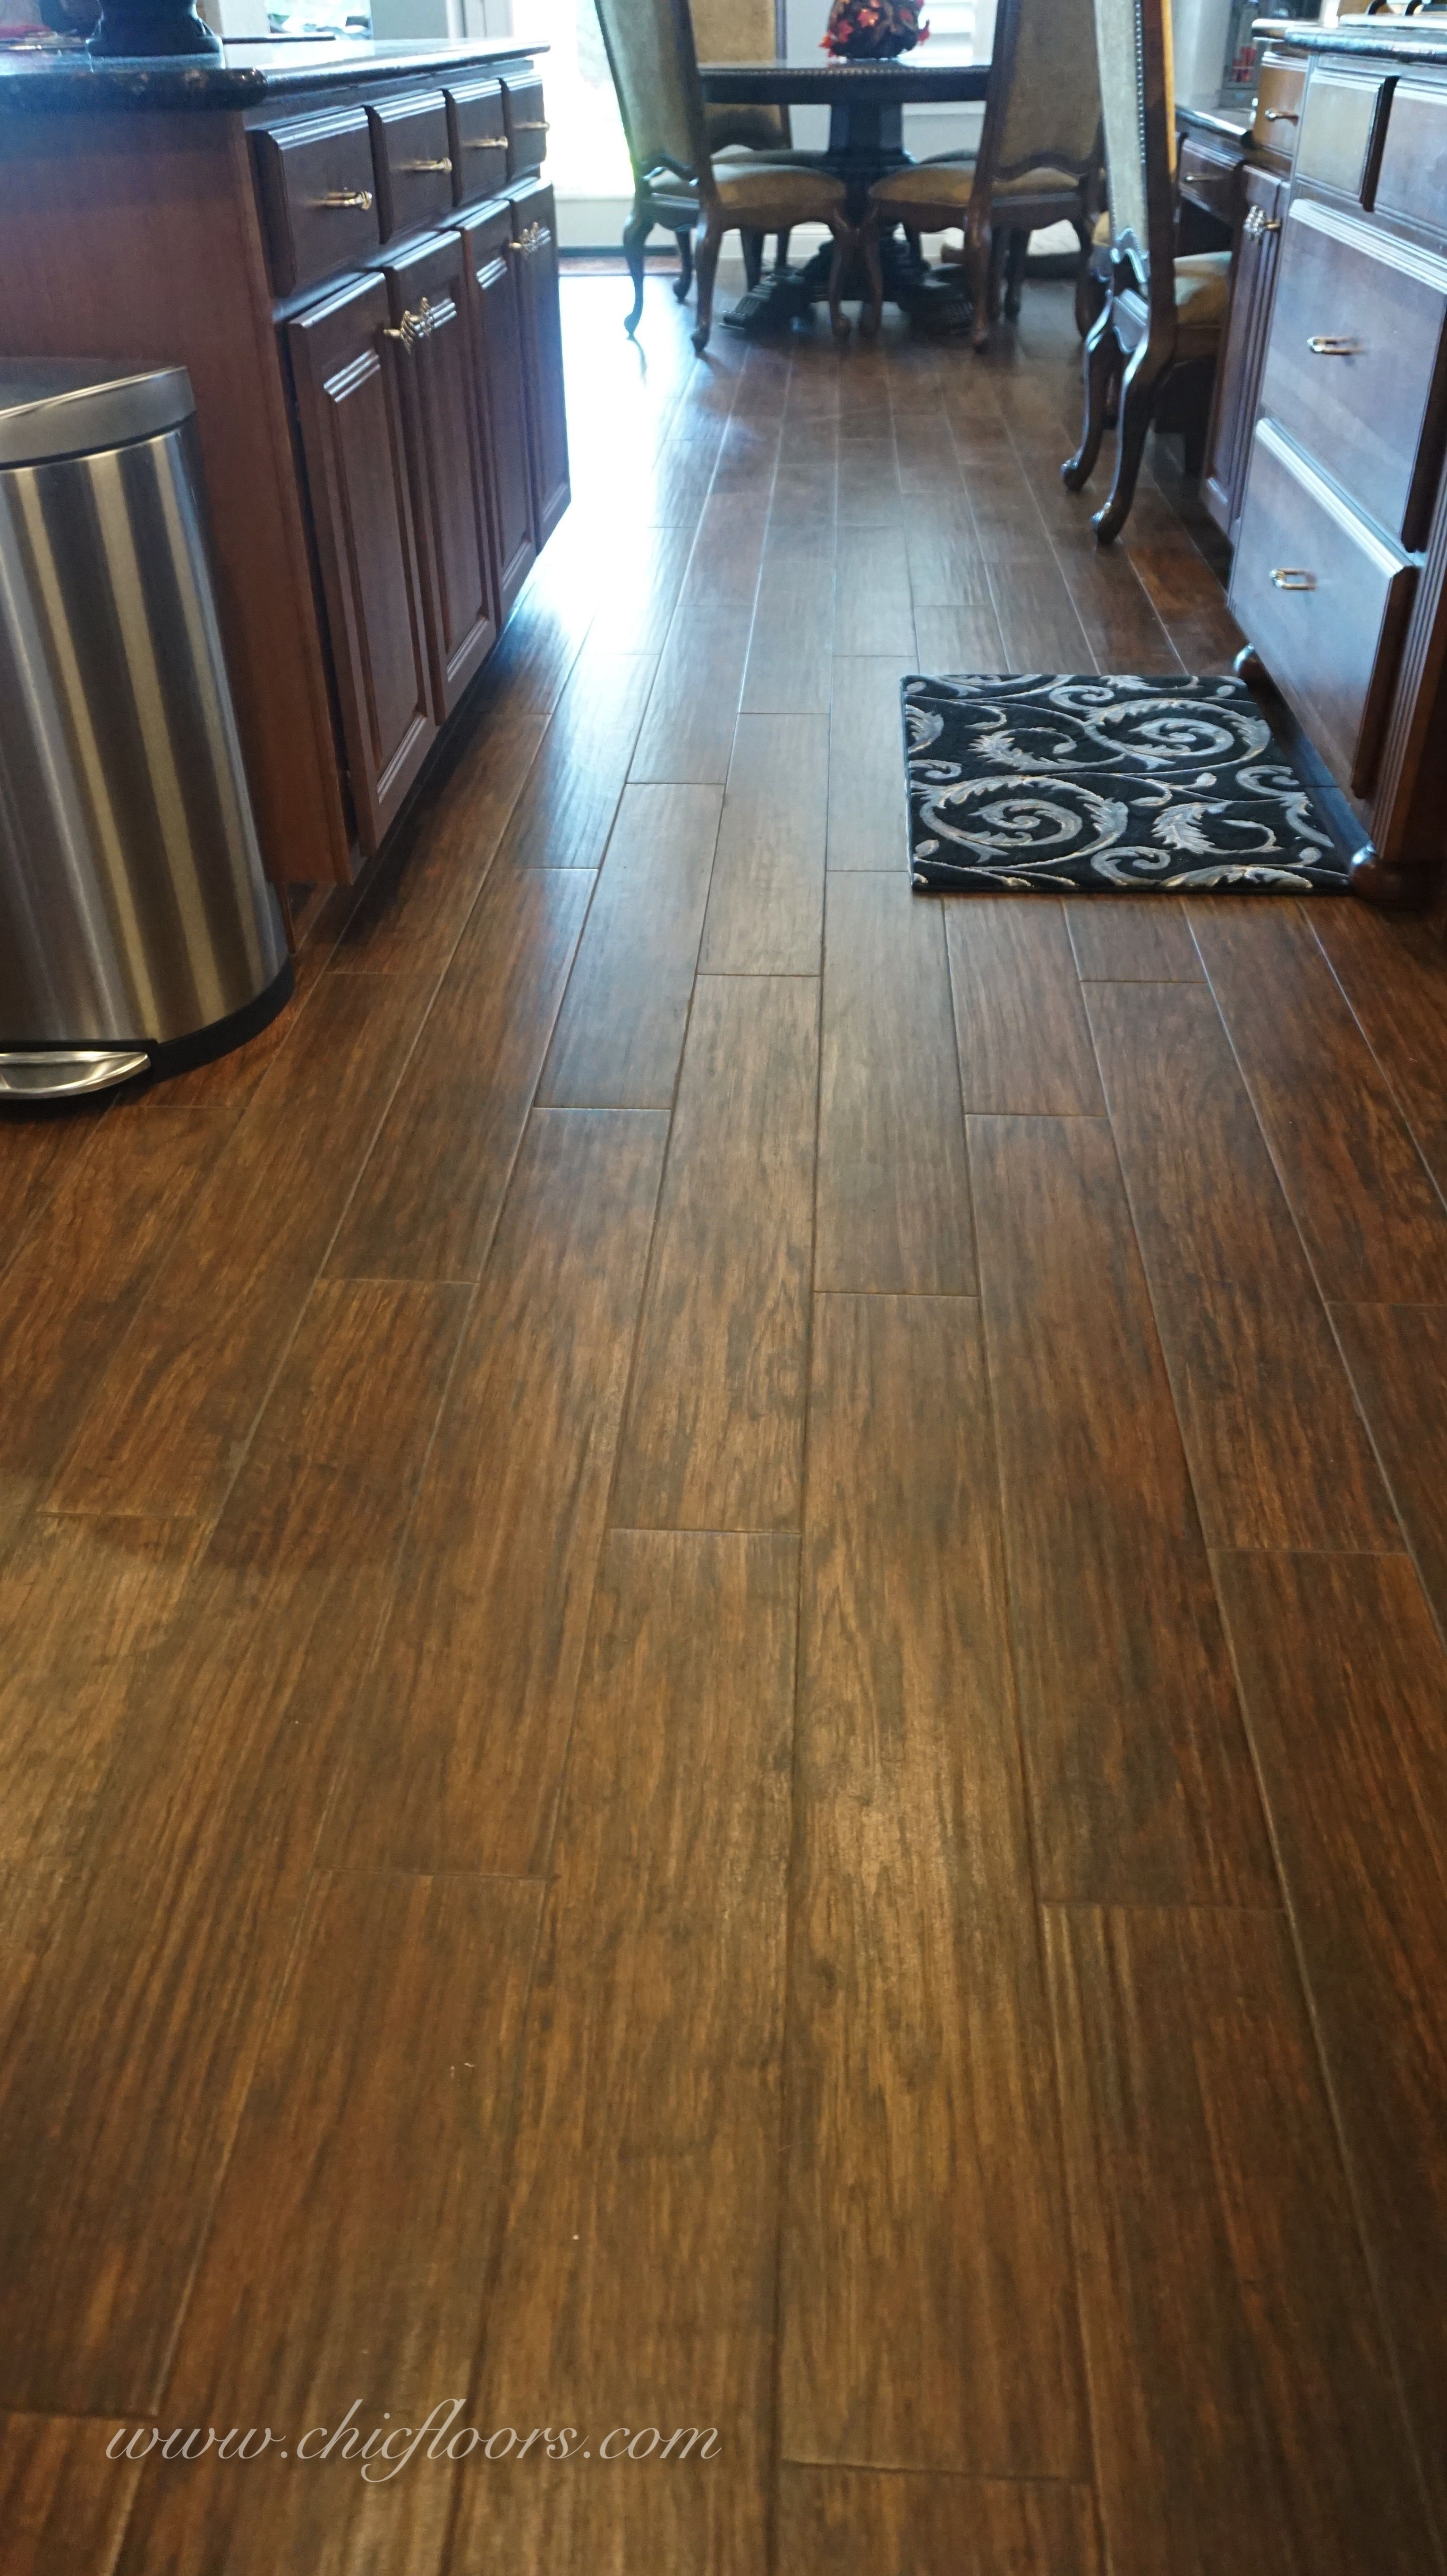 Shaw Floors Petrified Hickory 6x36 Porcelain Tile In The Color 700